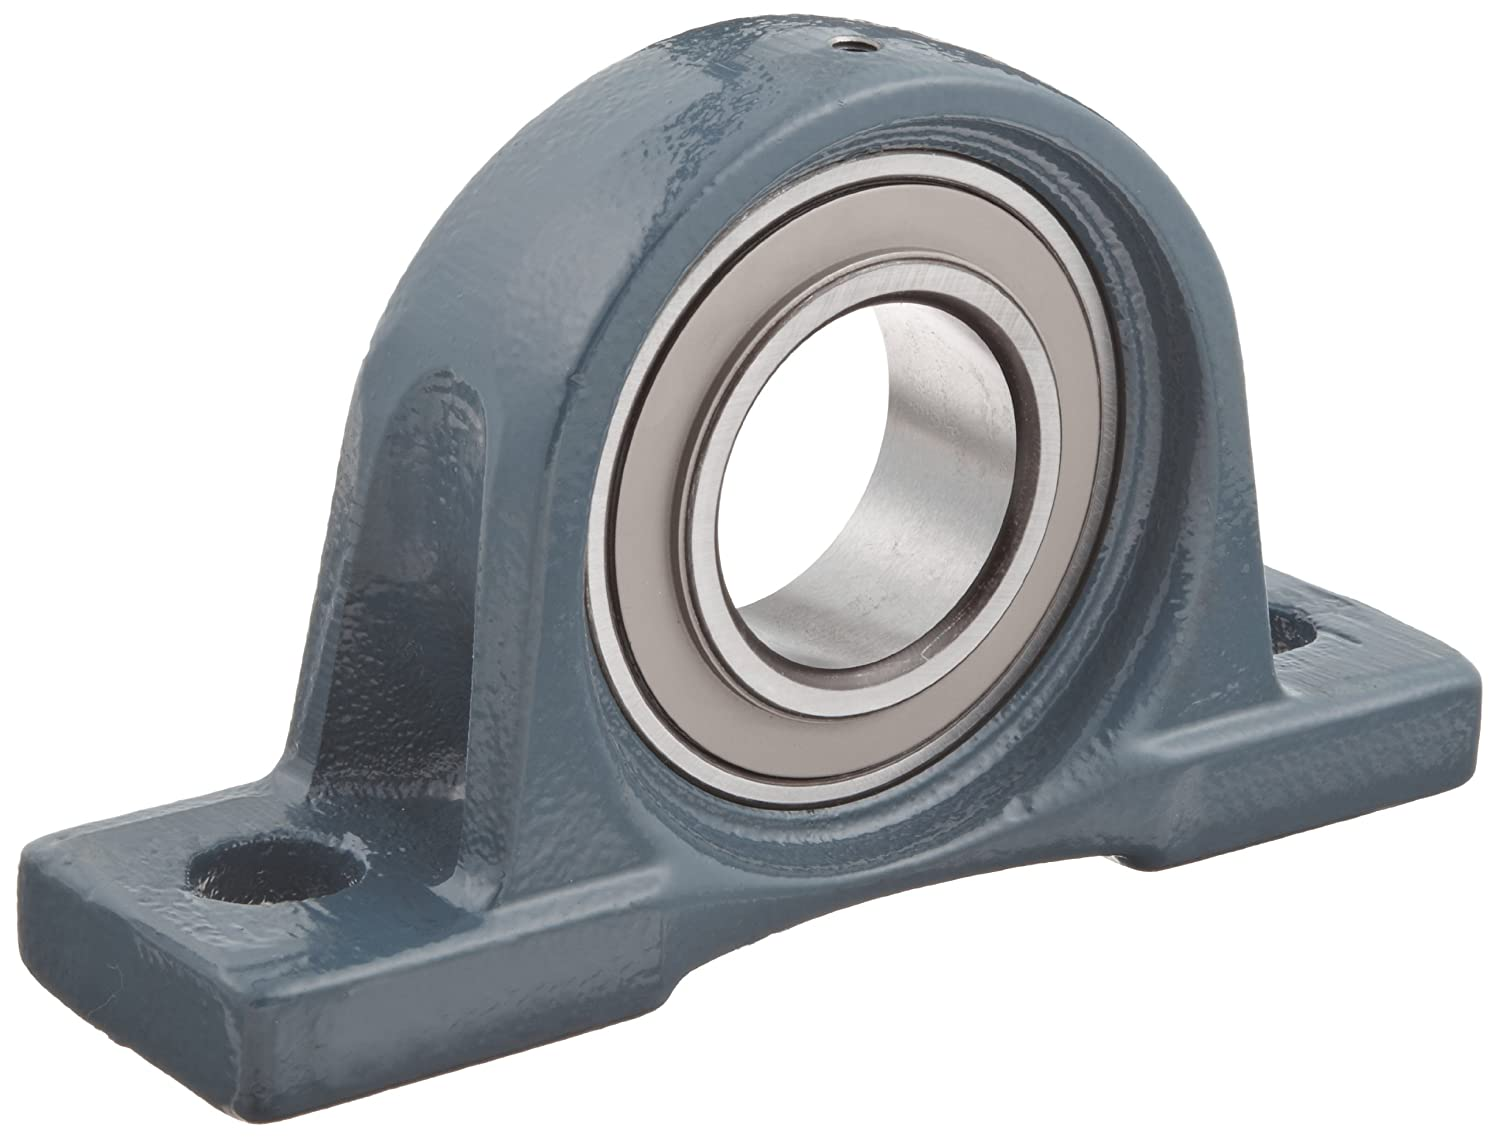 closed components two unit blocks engineered company bearings angle internal bolt housed black units timken housing products the with pillow block saf bearing